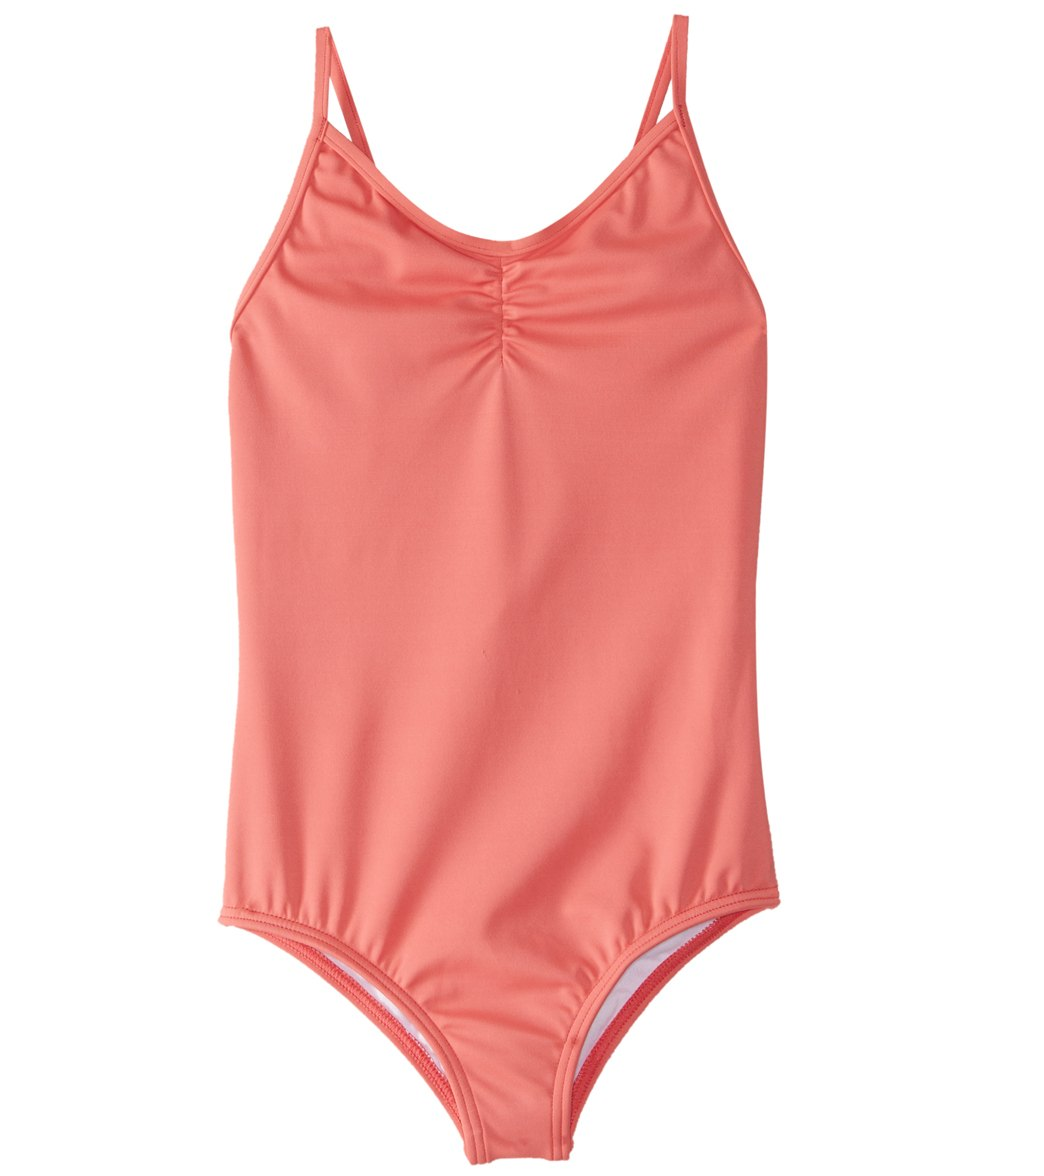 933f95fc74111 Billabong Girls' Sol Searcher One Piece Swimsuit (4-14) at SwimOutlet.com -  Free Shipping